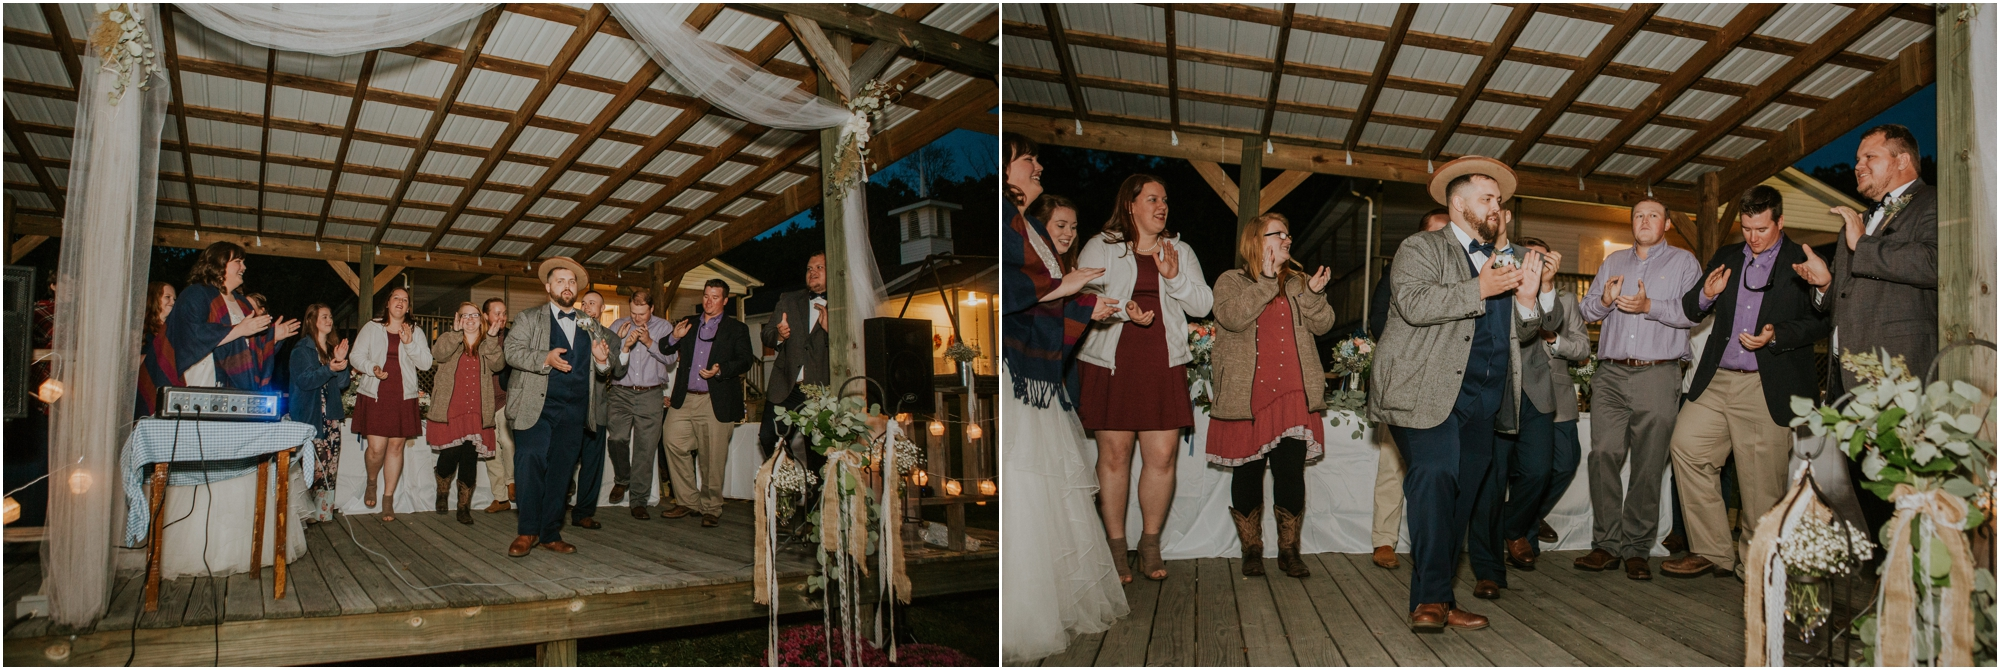 caryville-robbins-middle-tennessee-intimate-cozy-fall-navy-rustic-backyard-wedding_0137.jpg